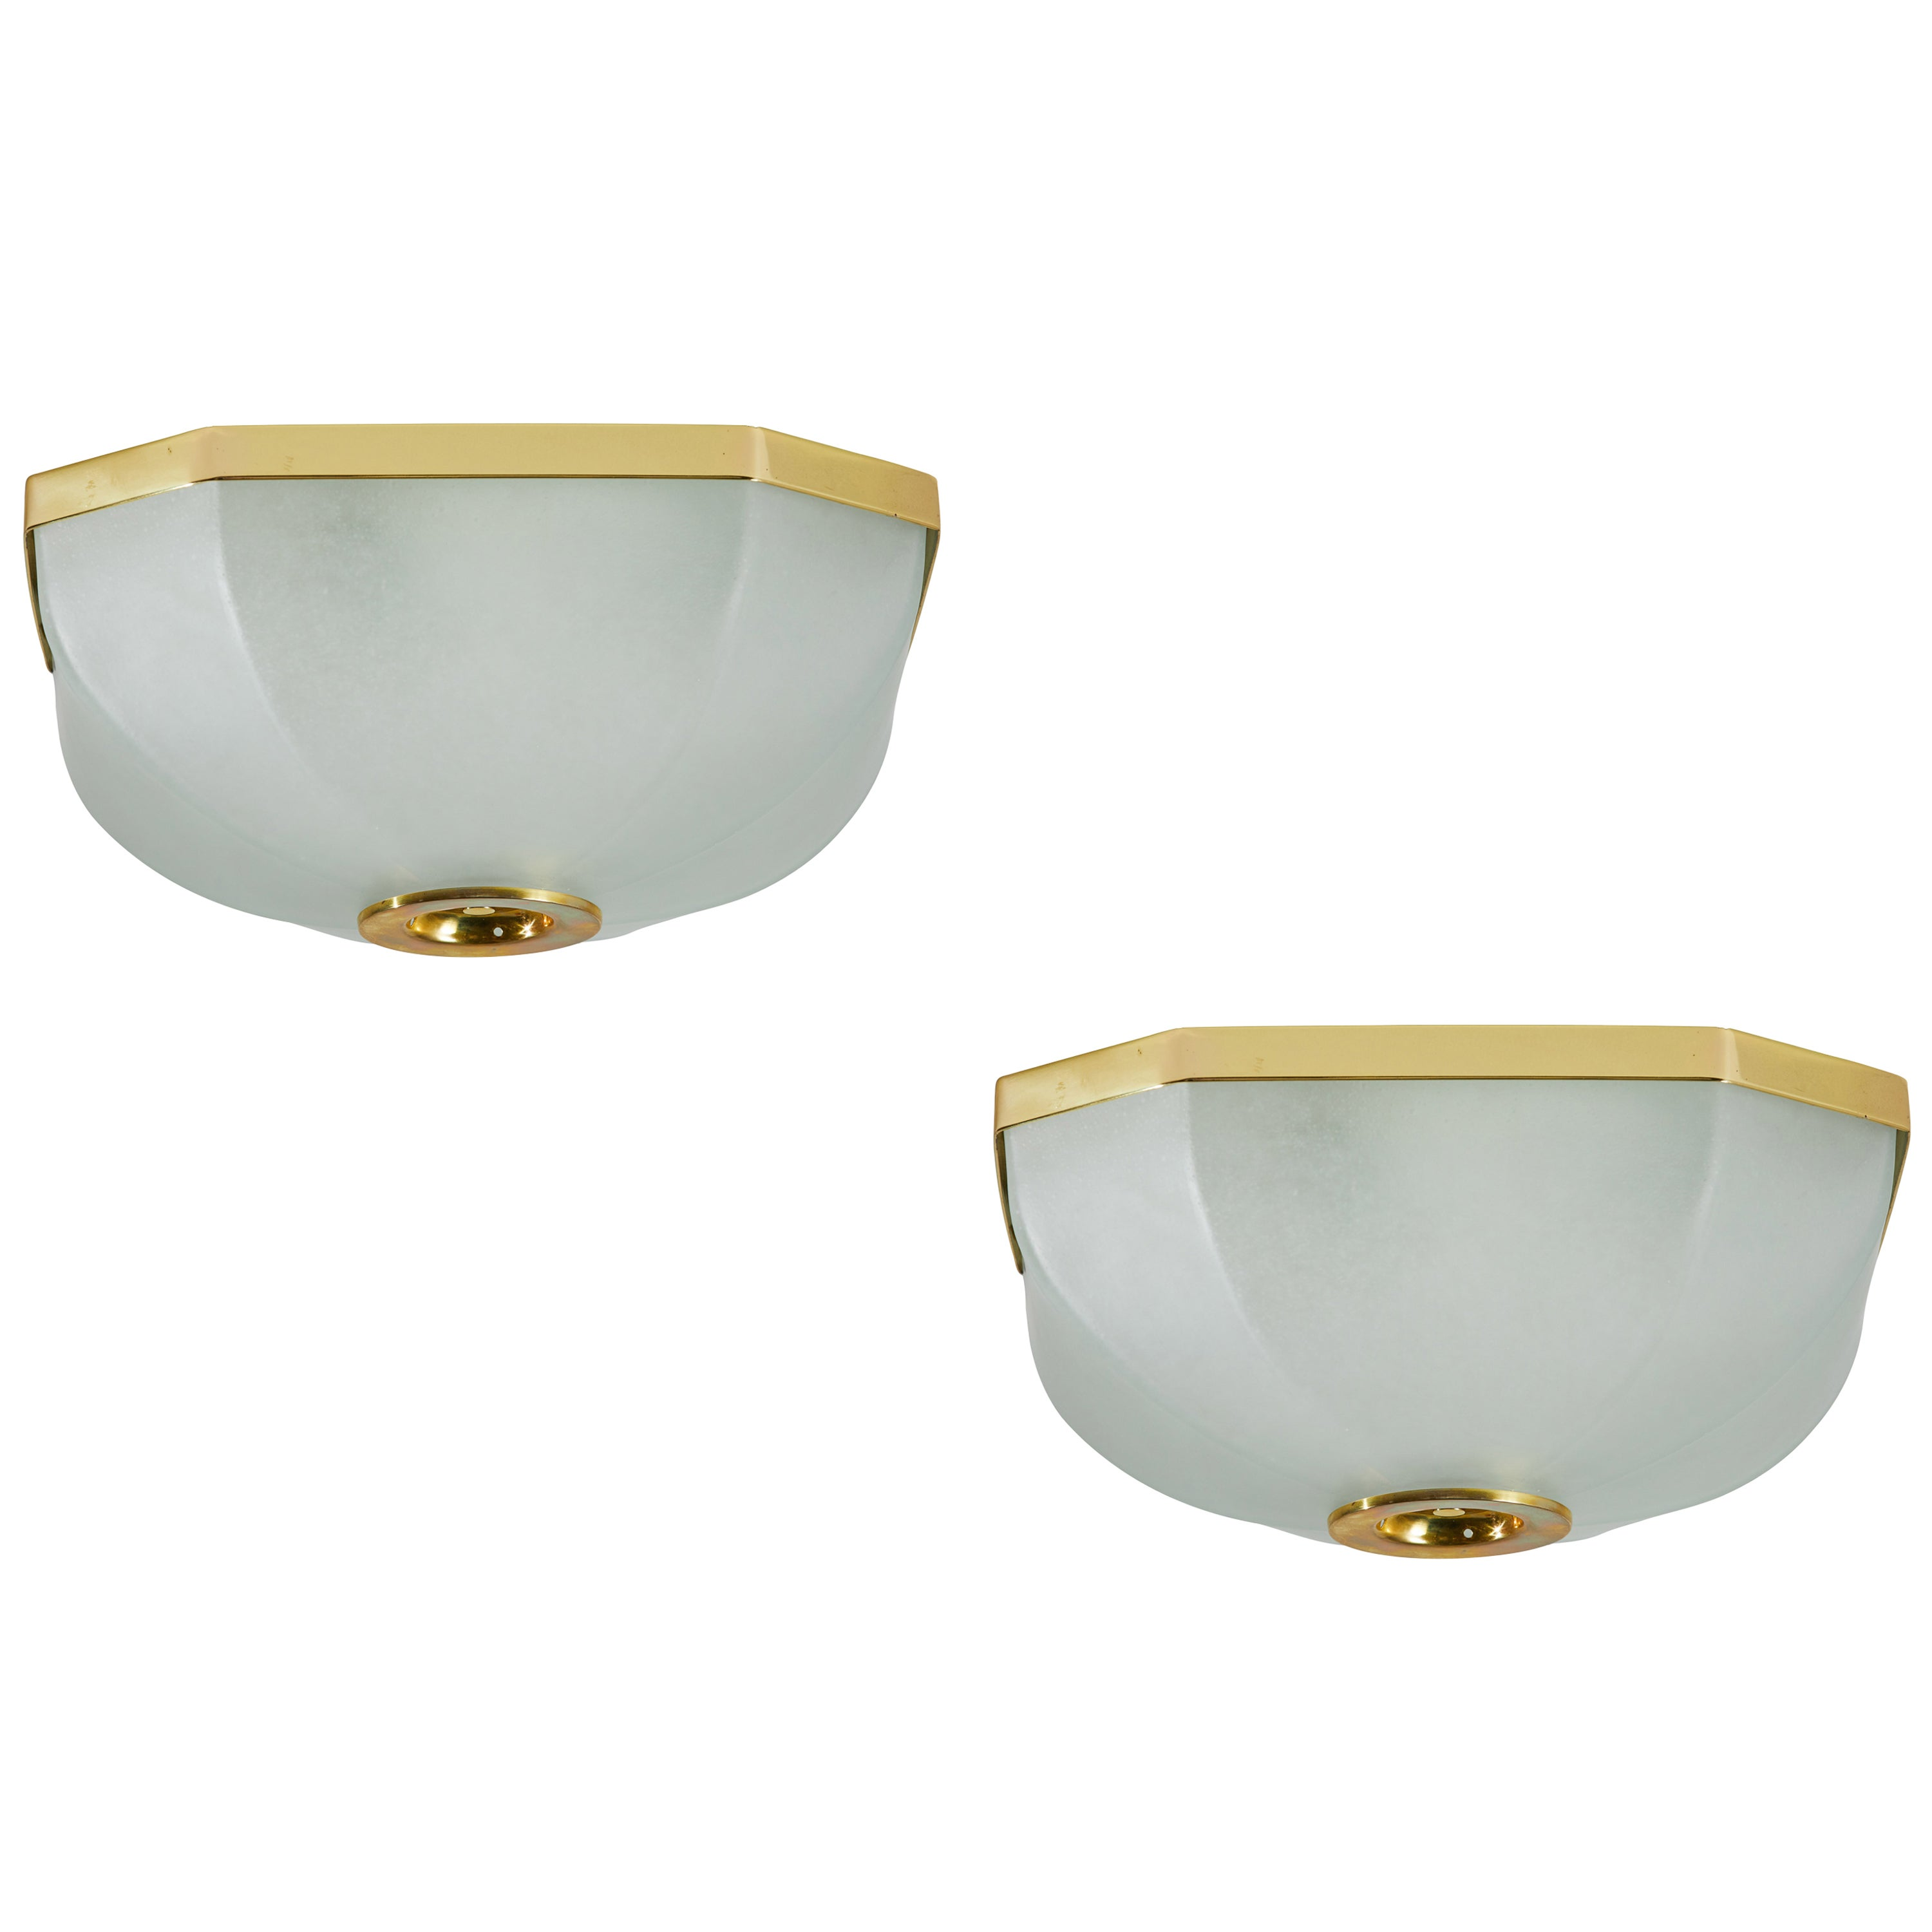 Two Flushmount Ceiling Lights by Lumi